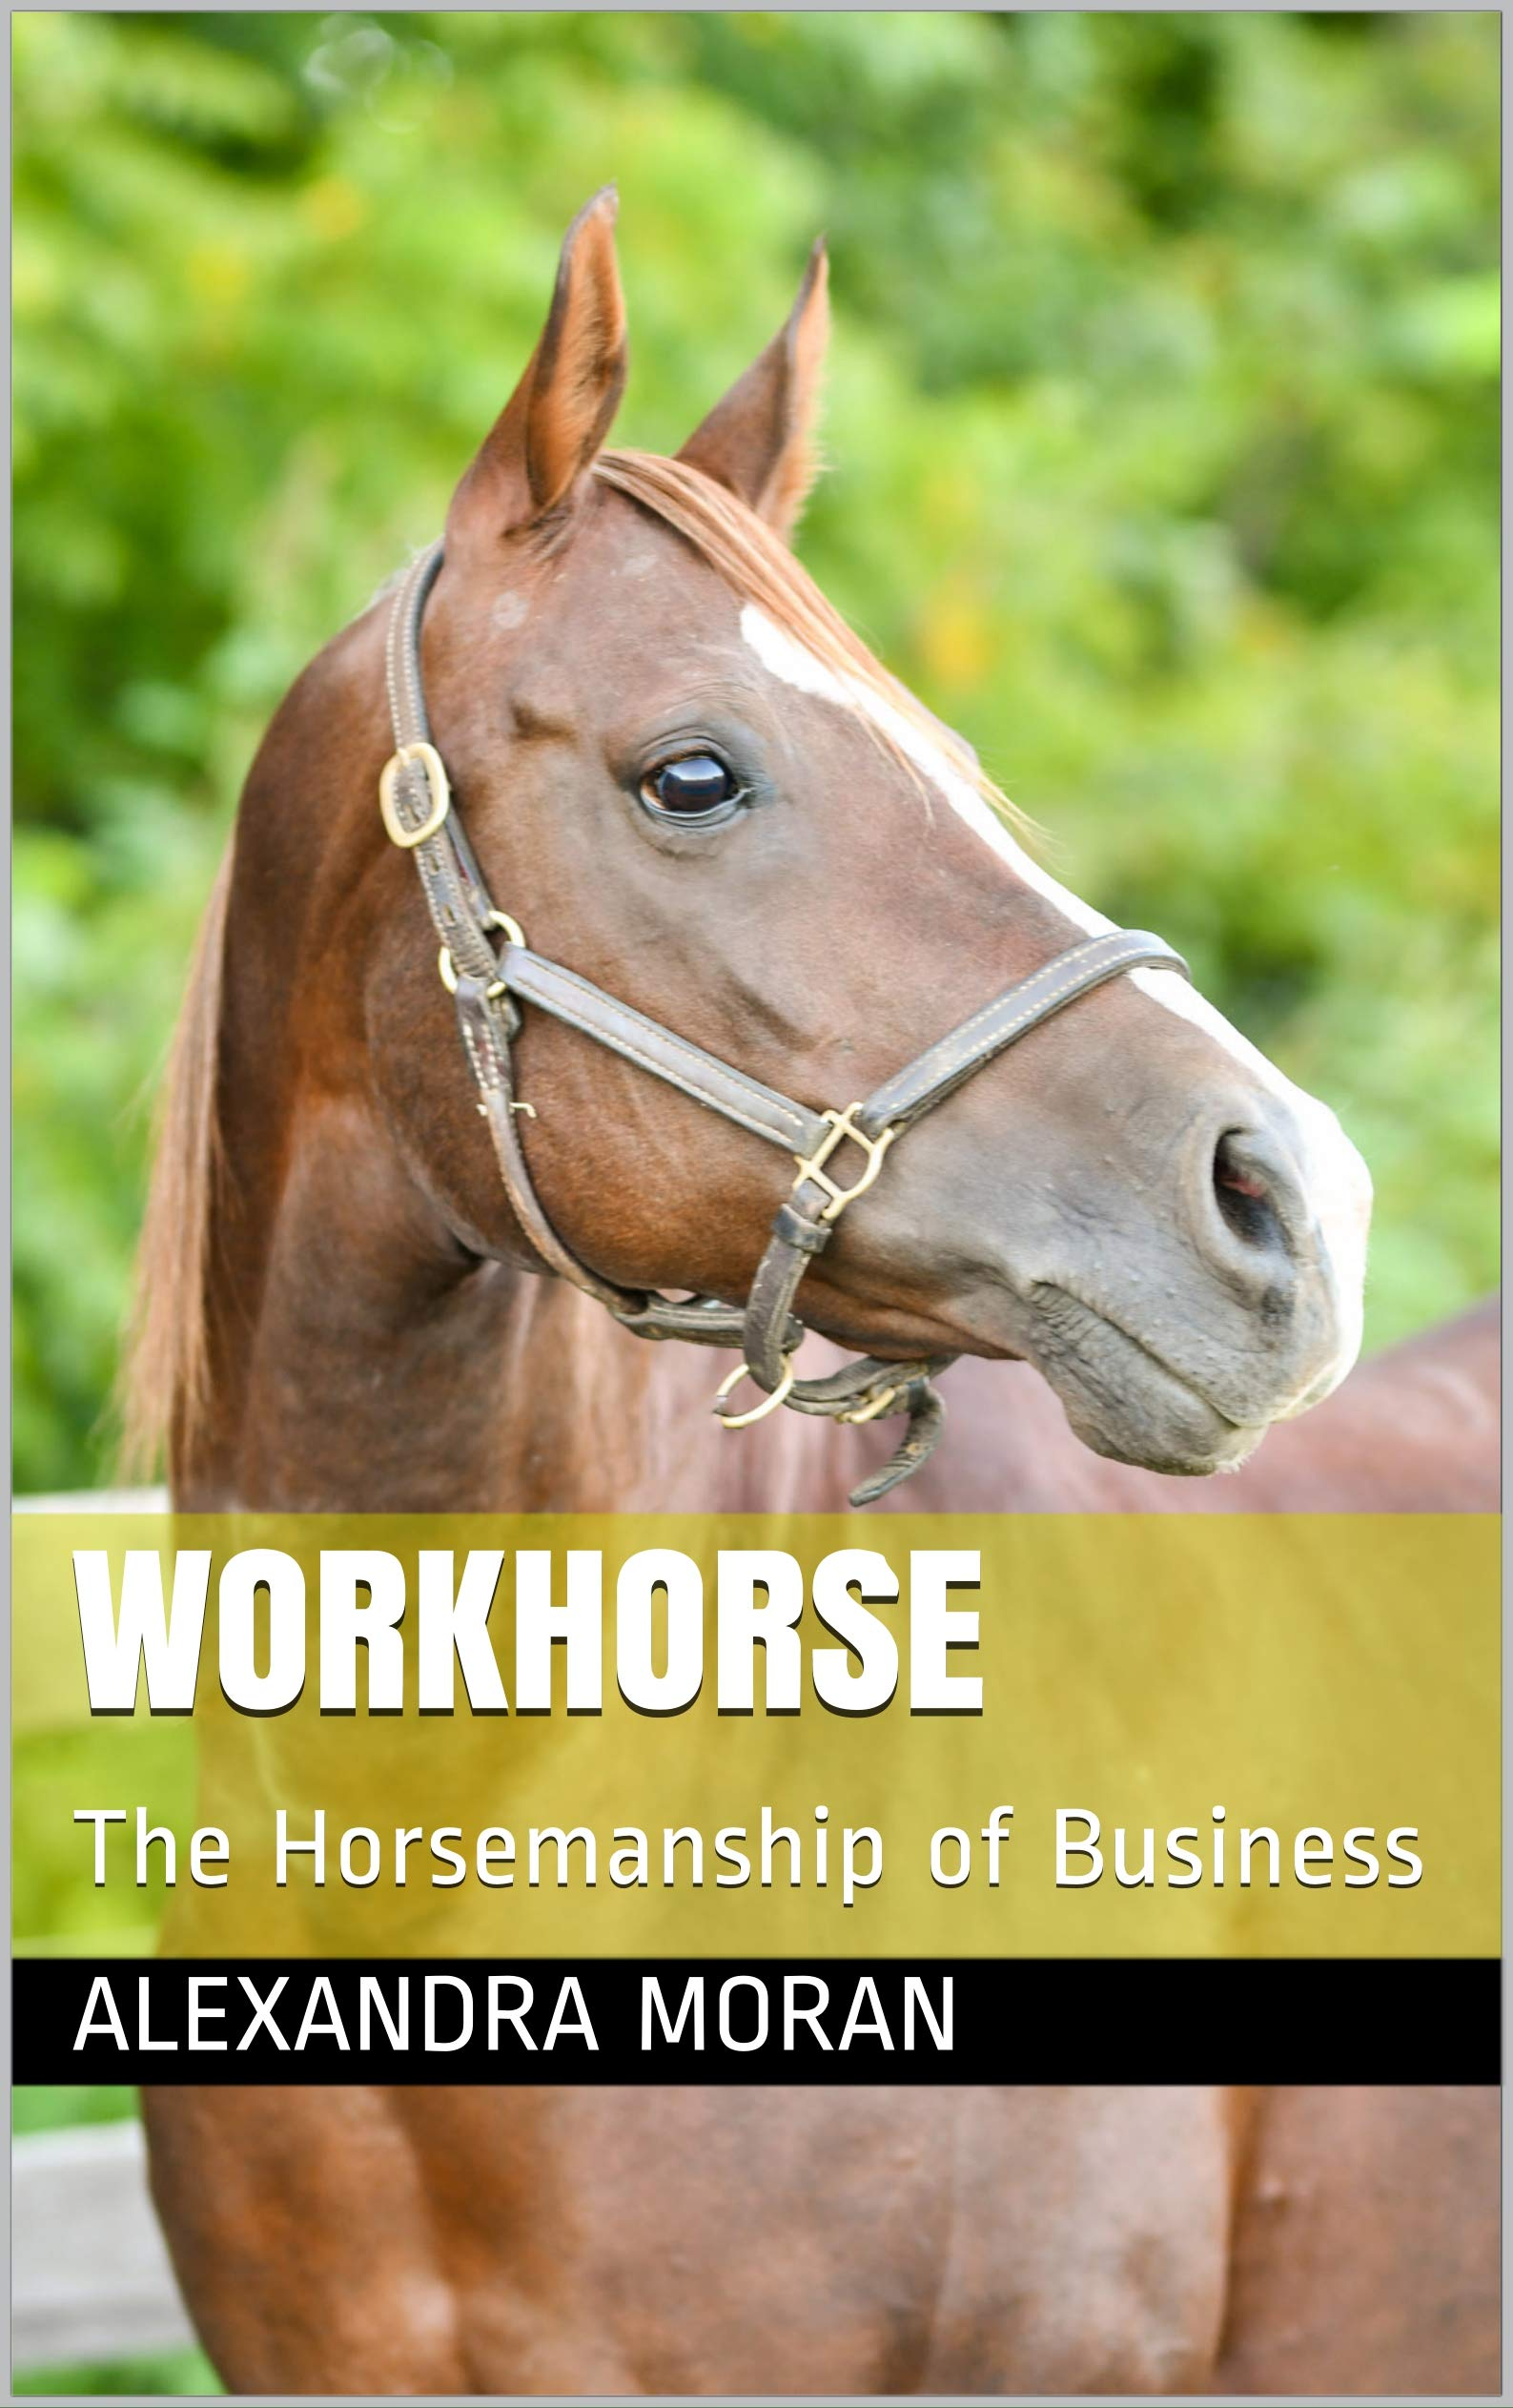 Workhorse: The Horsemanship of Business